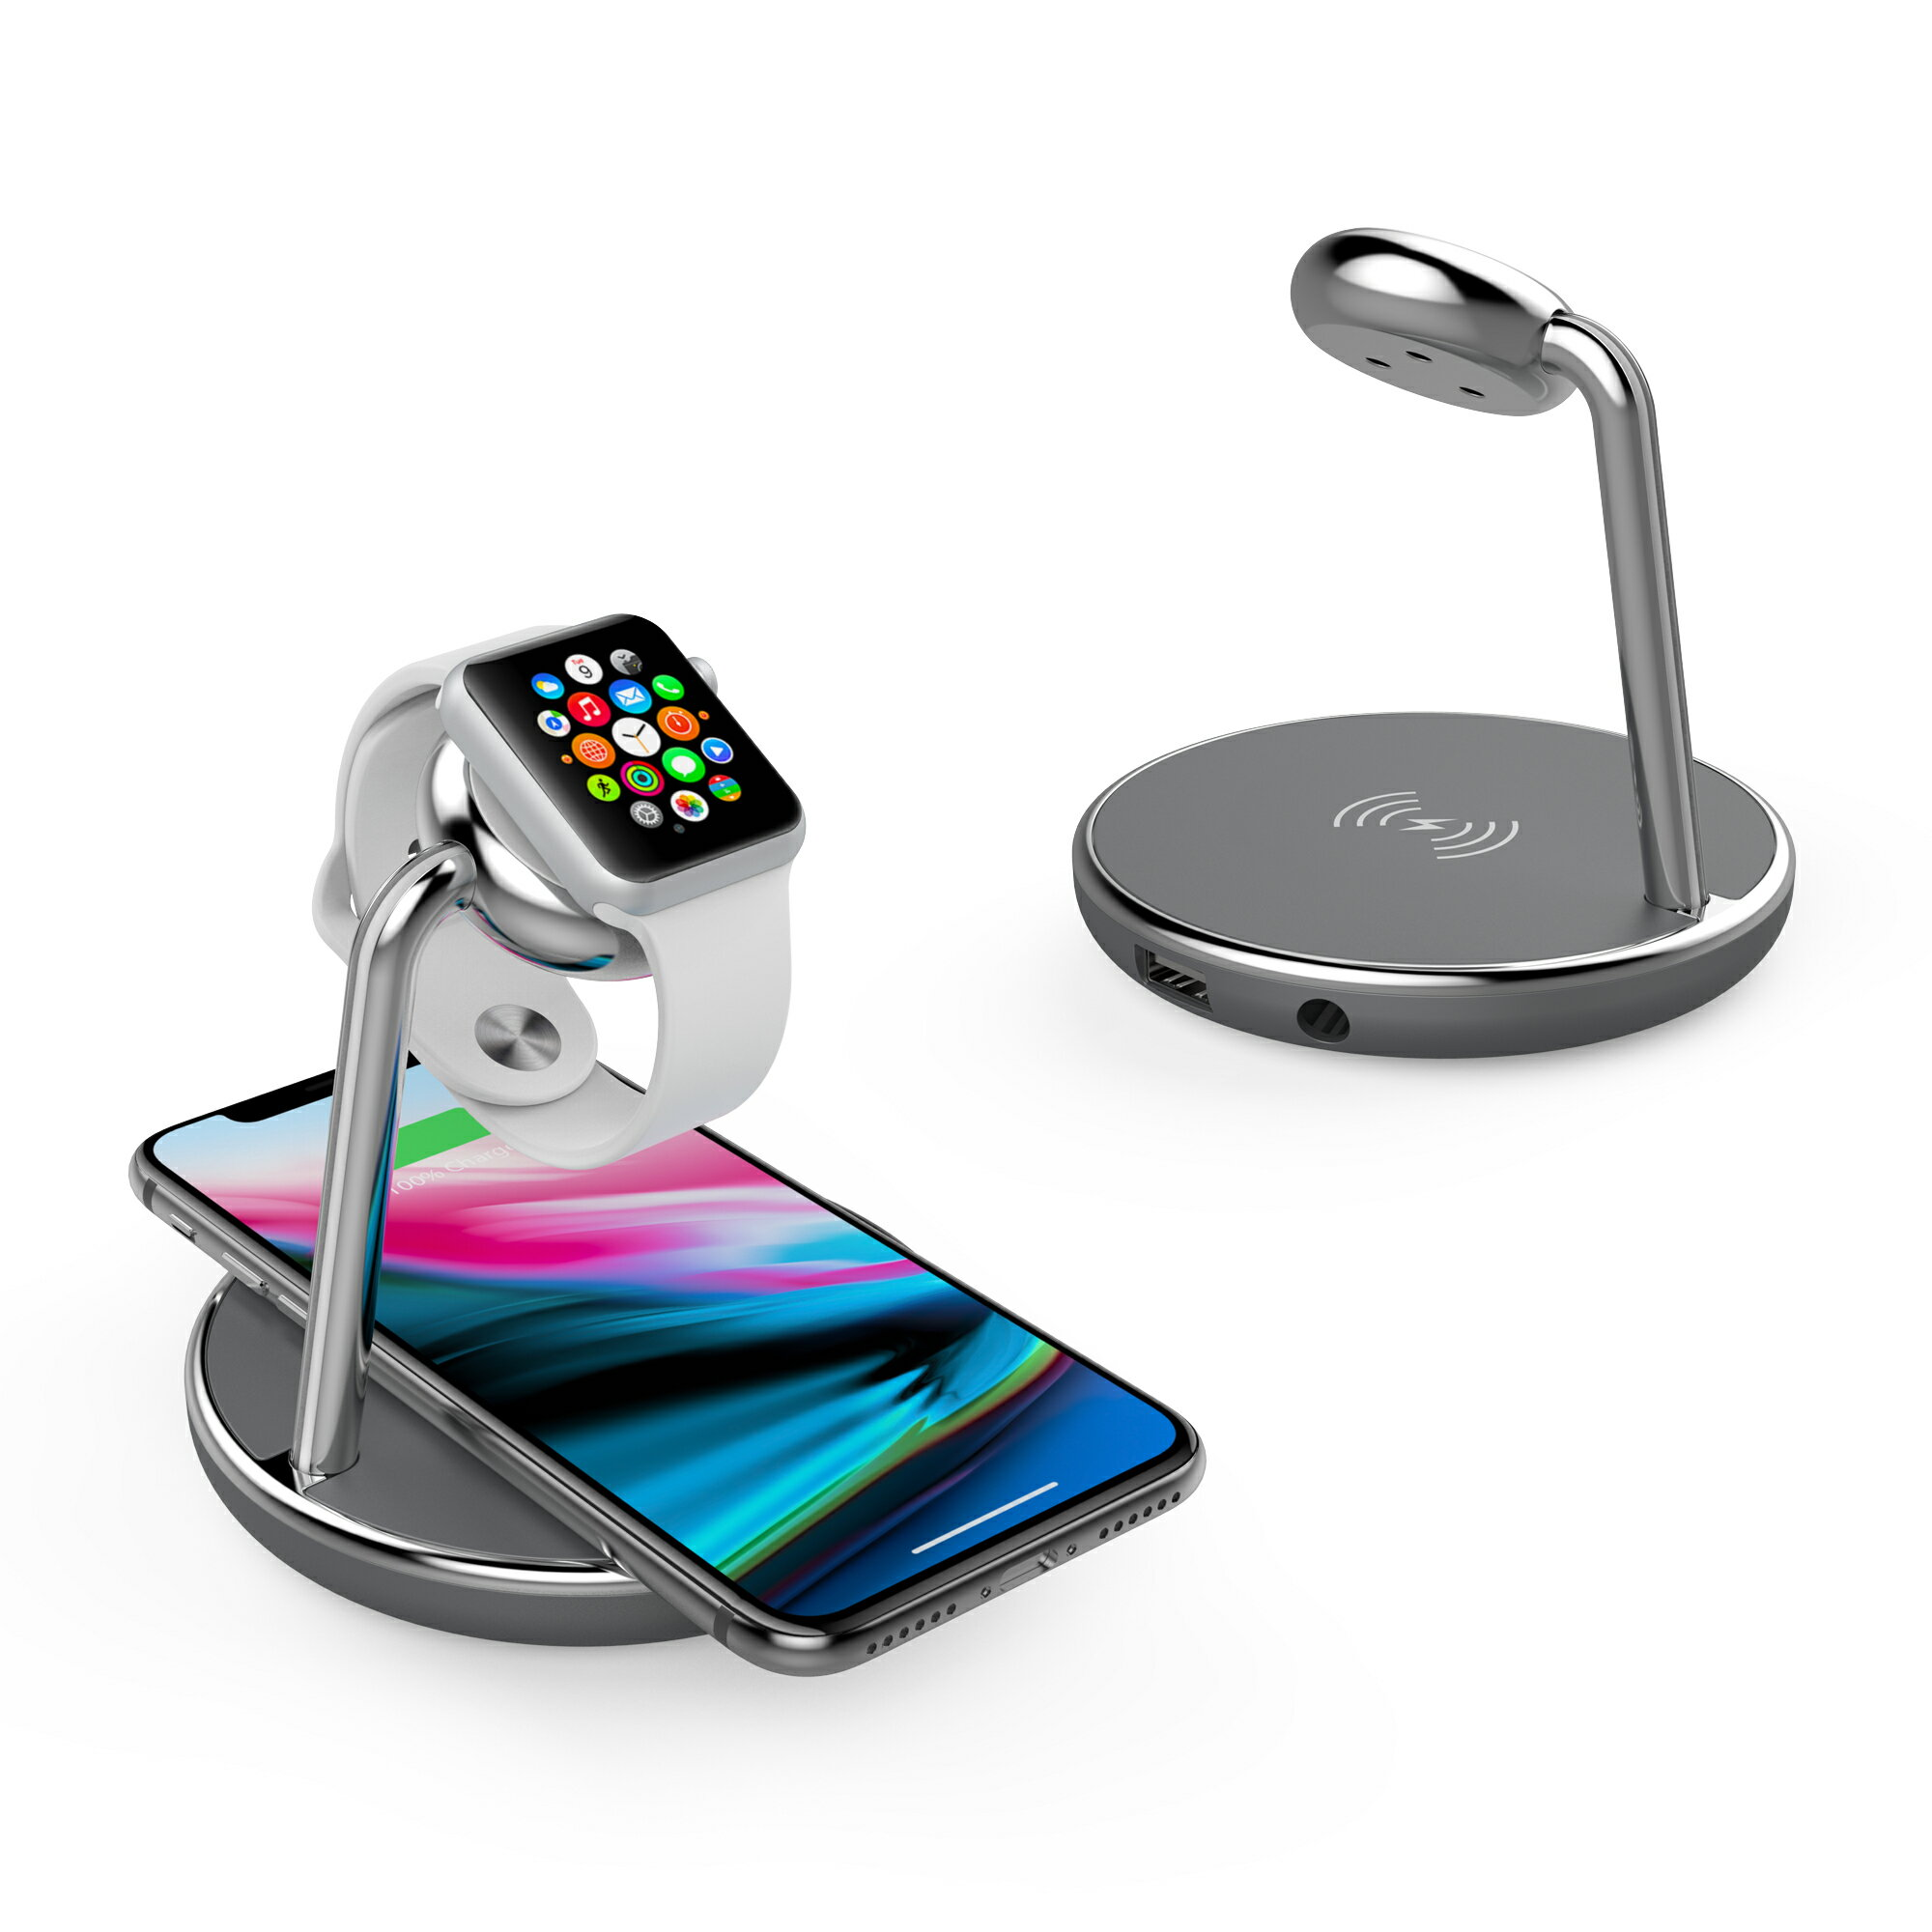 Element Works Usa Apple Mfi Certified Wireless Charging Stand Watch Dock With Built In Module Usb Ports And